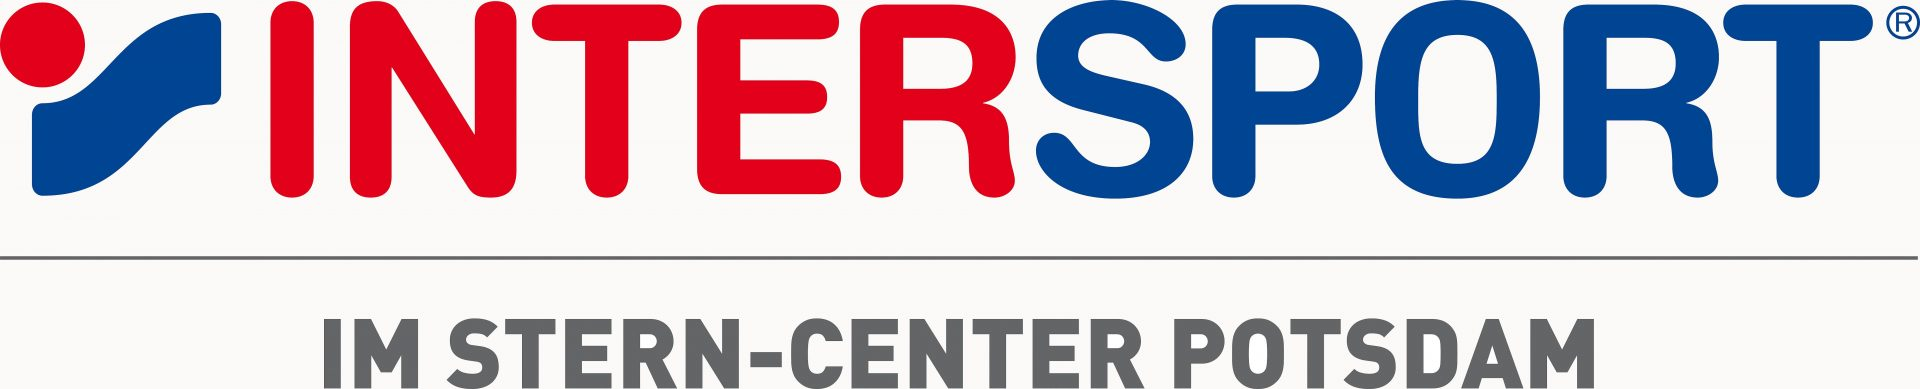 intersport-logo2